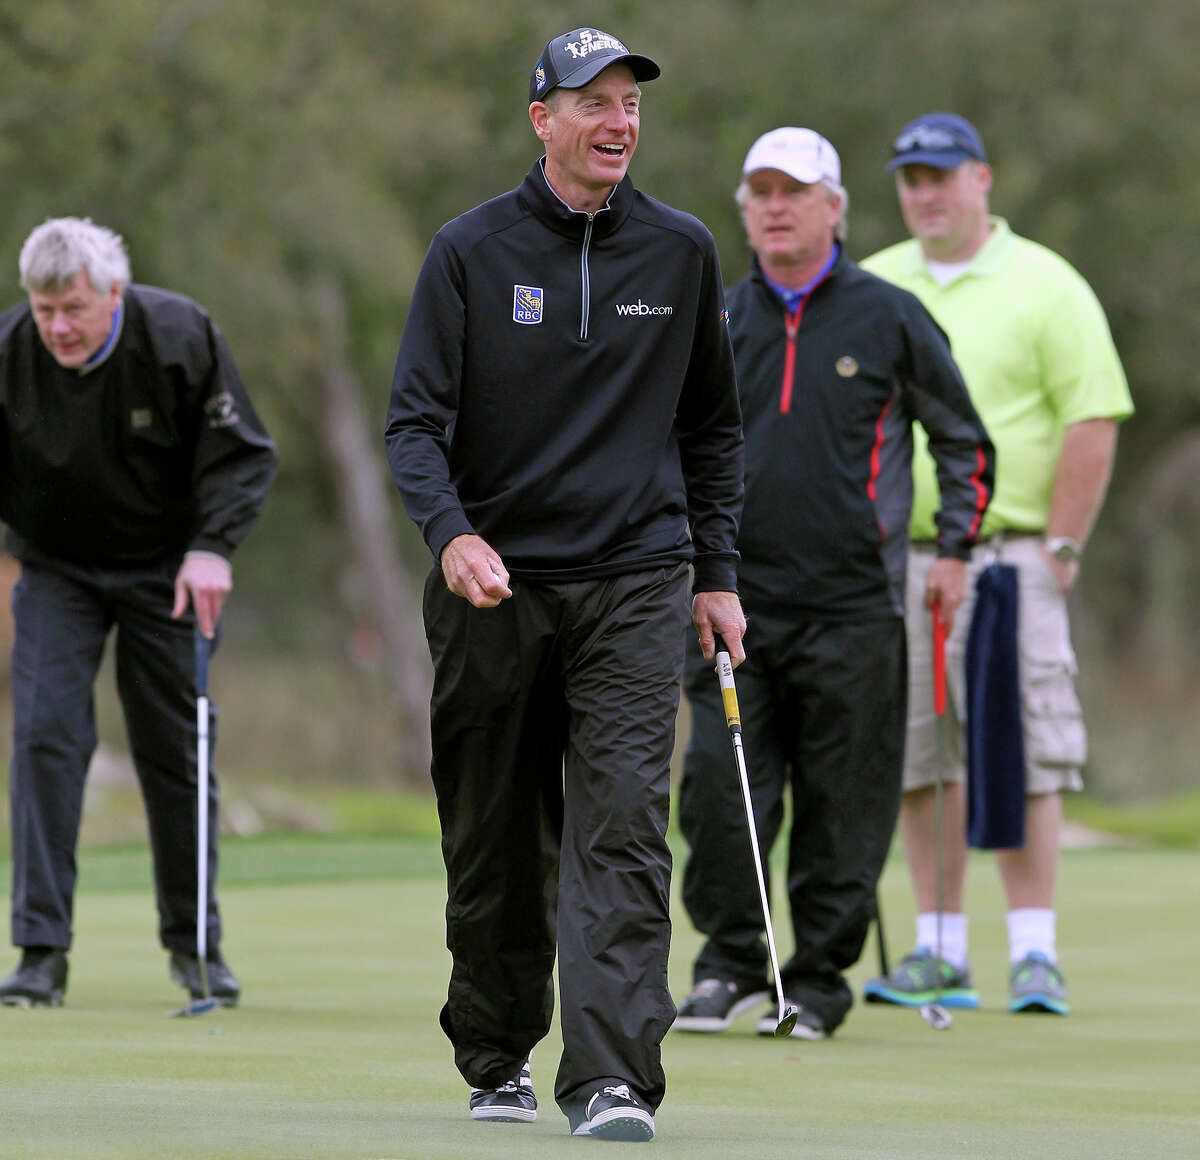 Jim Furyk laughs with his playing partners during the Zachry/JV Industrial Pro-Am on March 26, 2014.